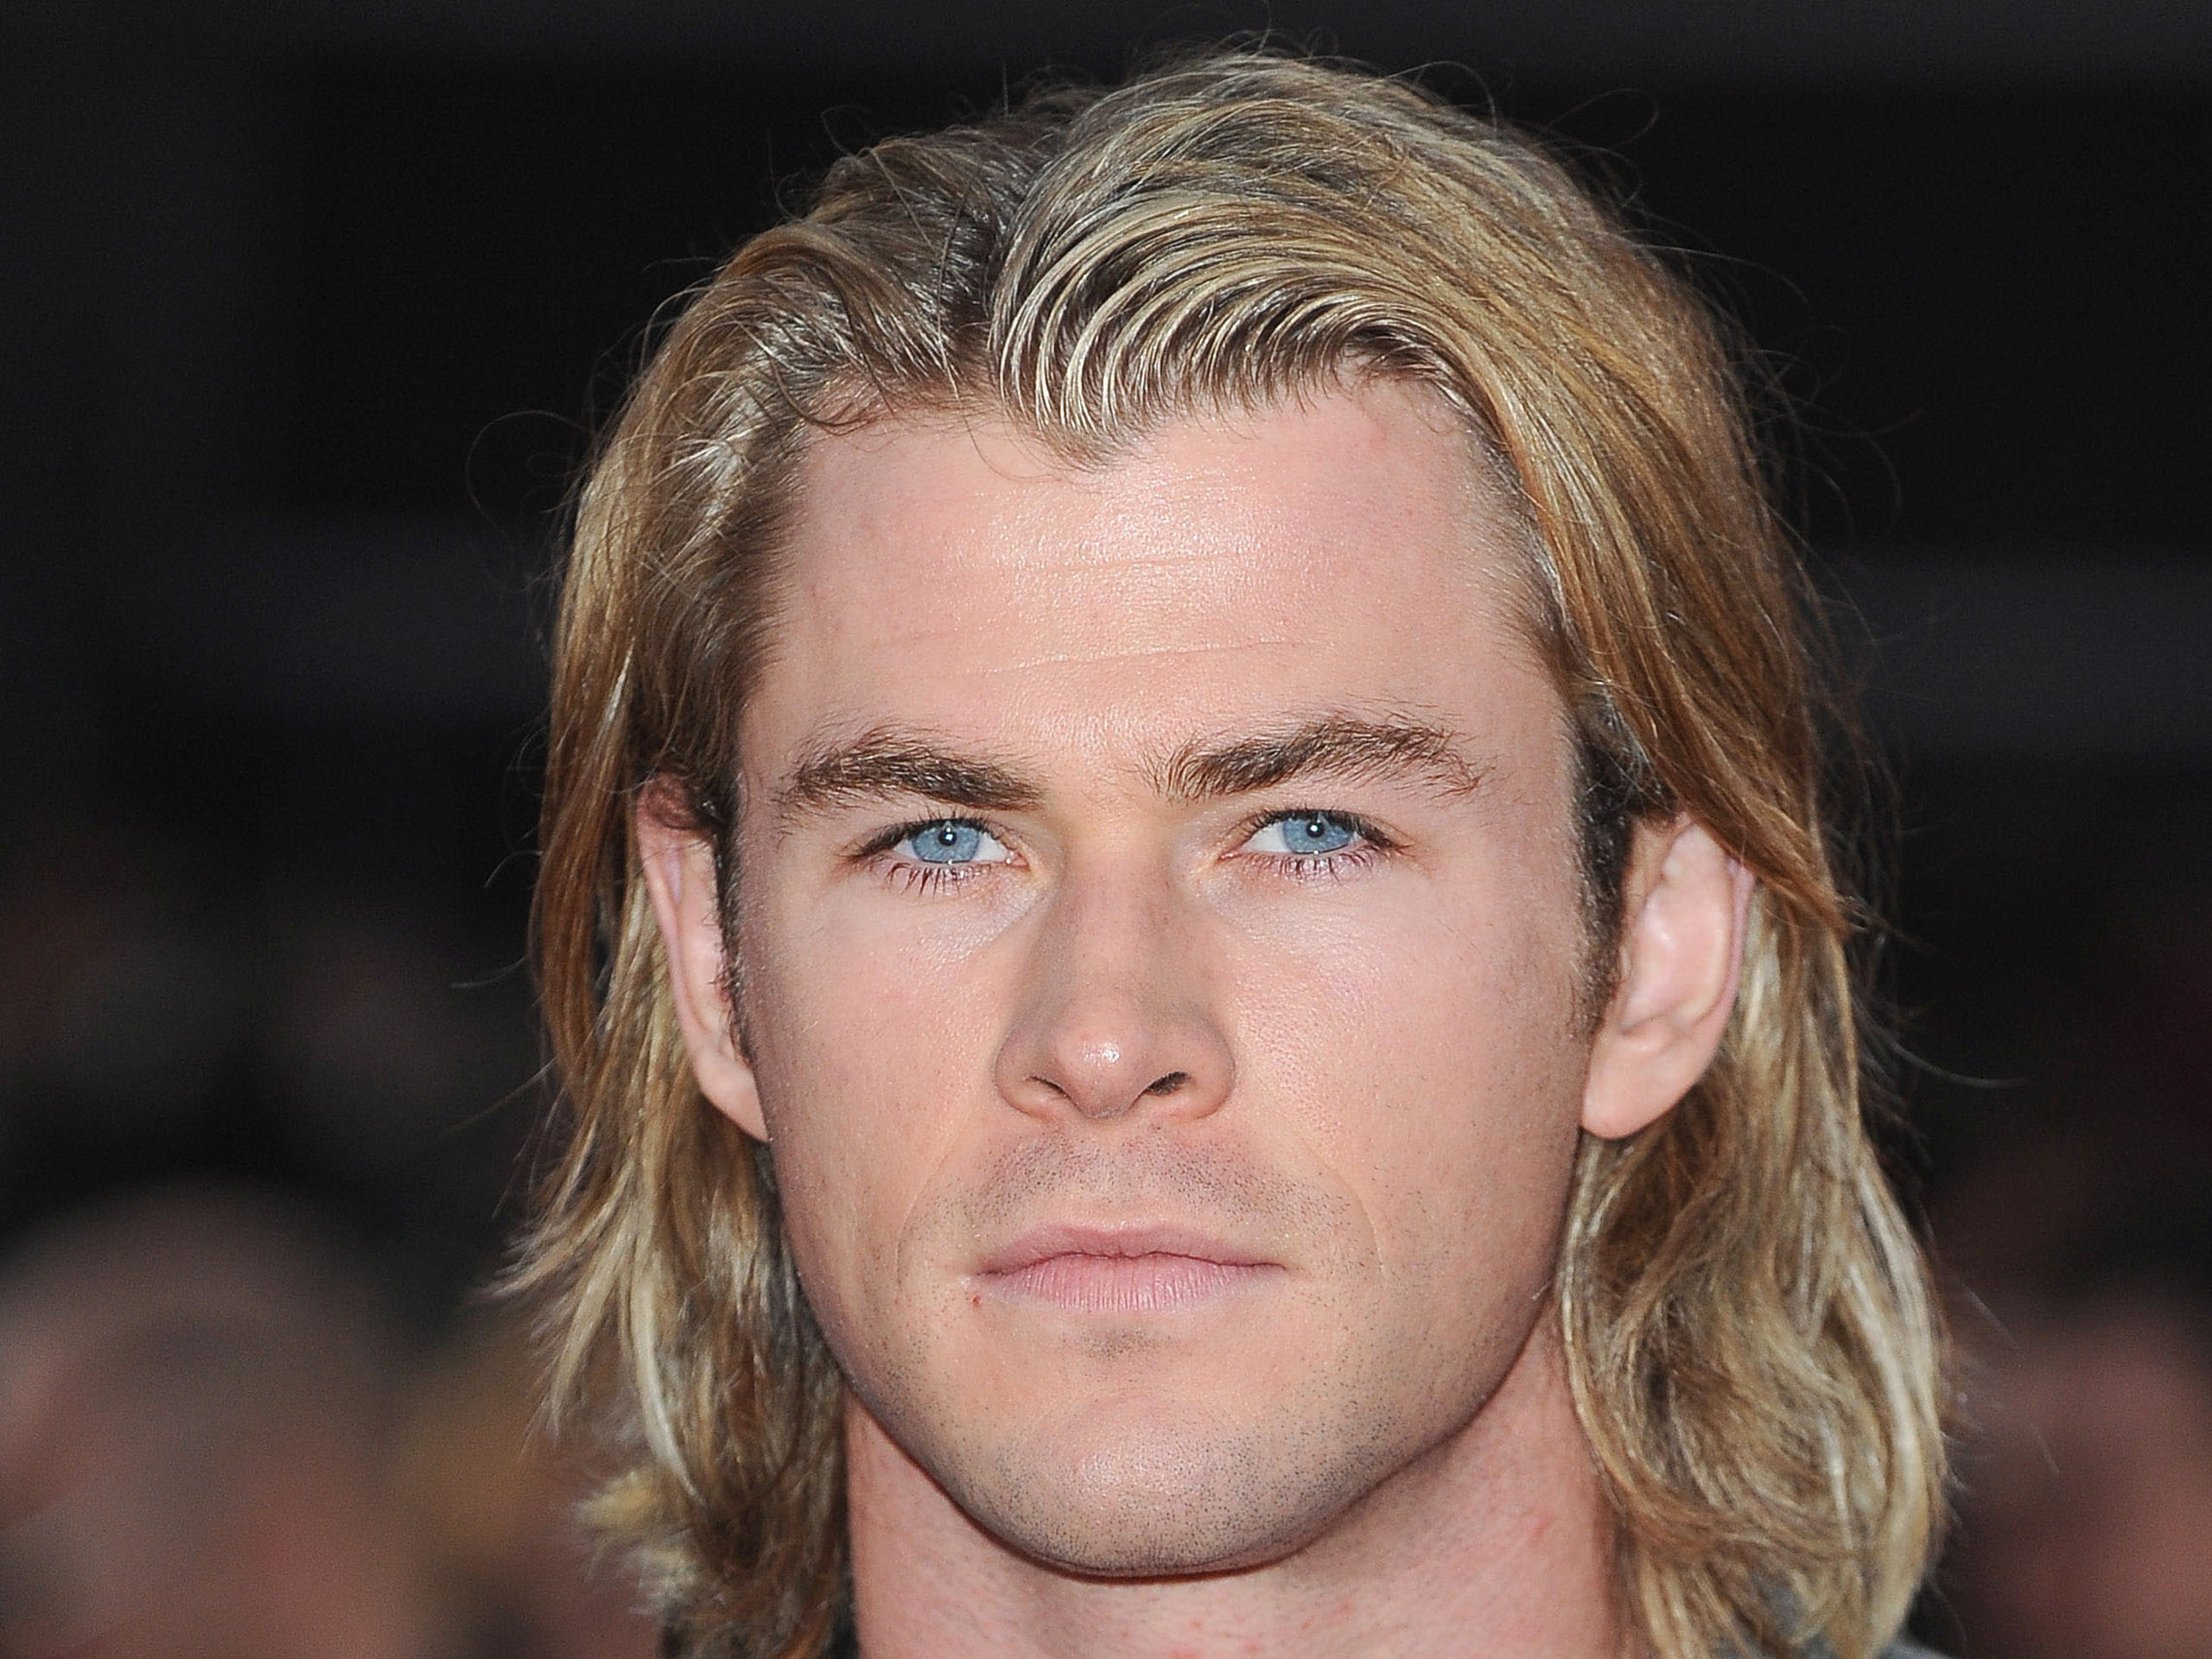 Incoming search terms: chris hemsworth ...